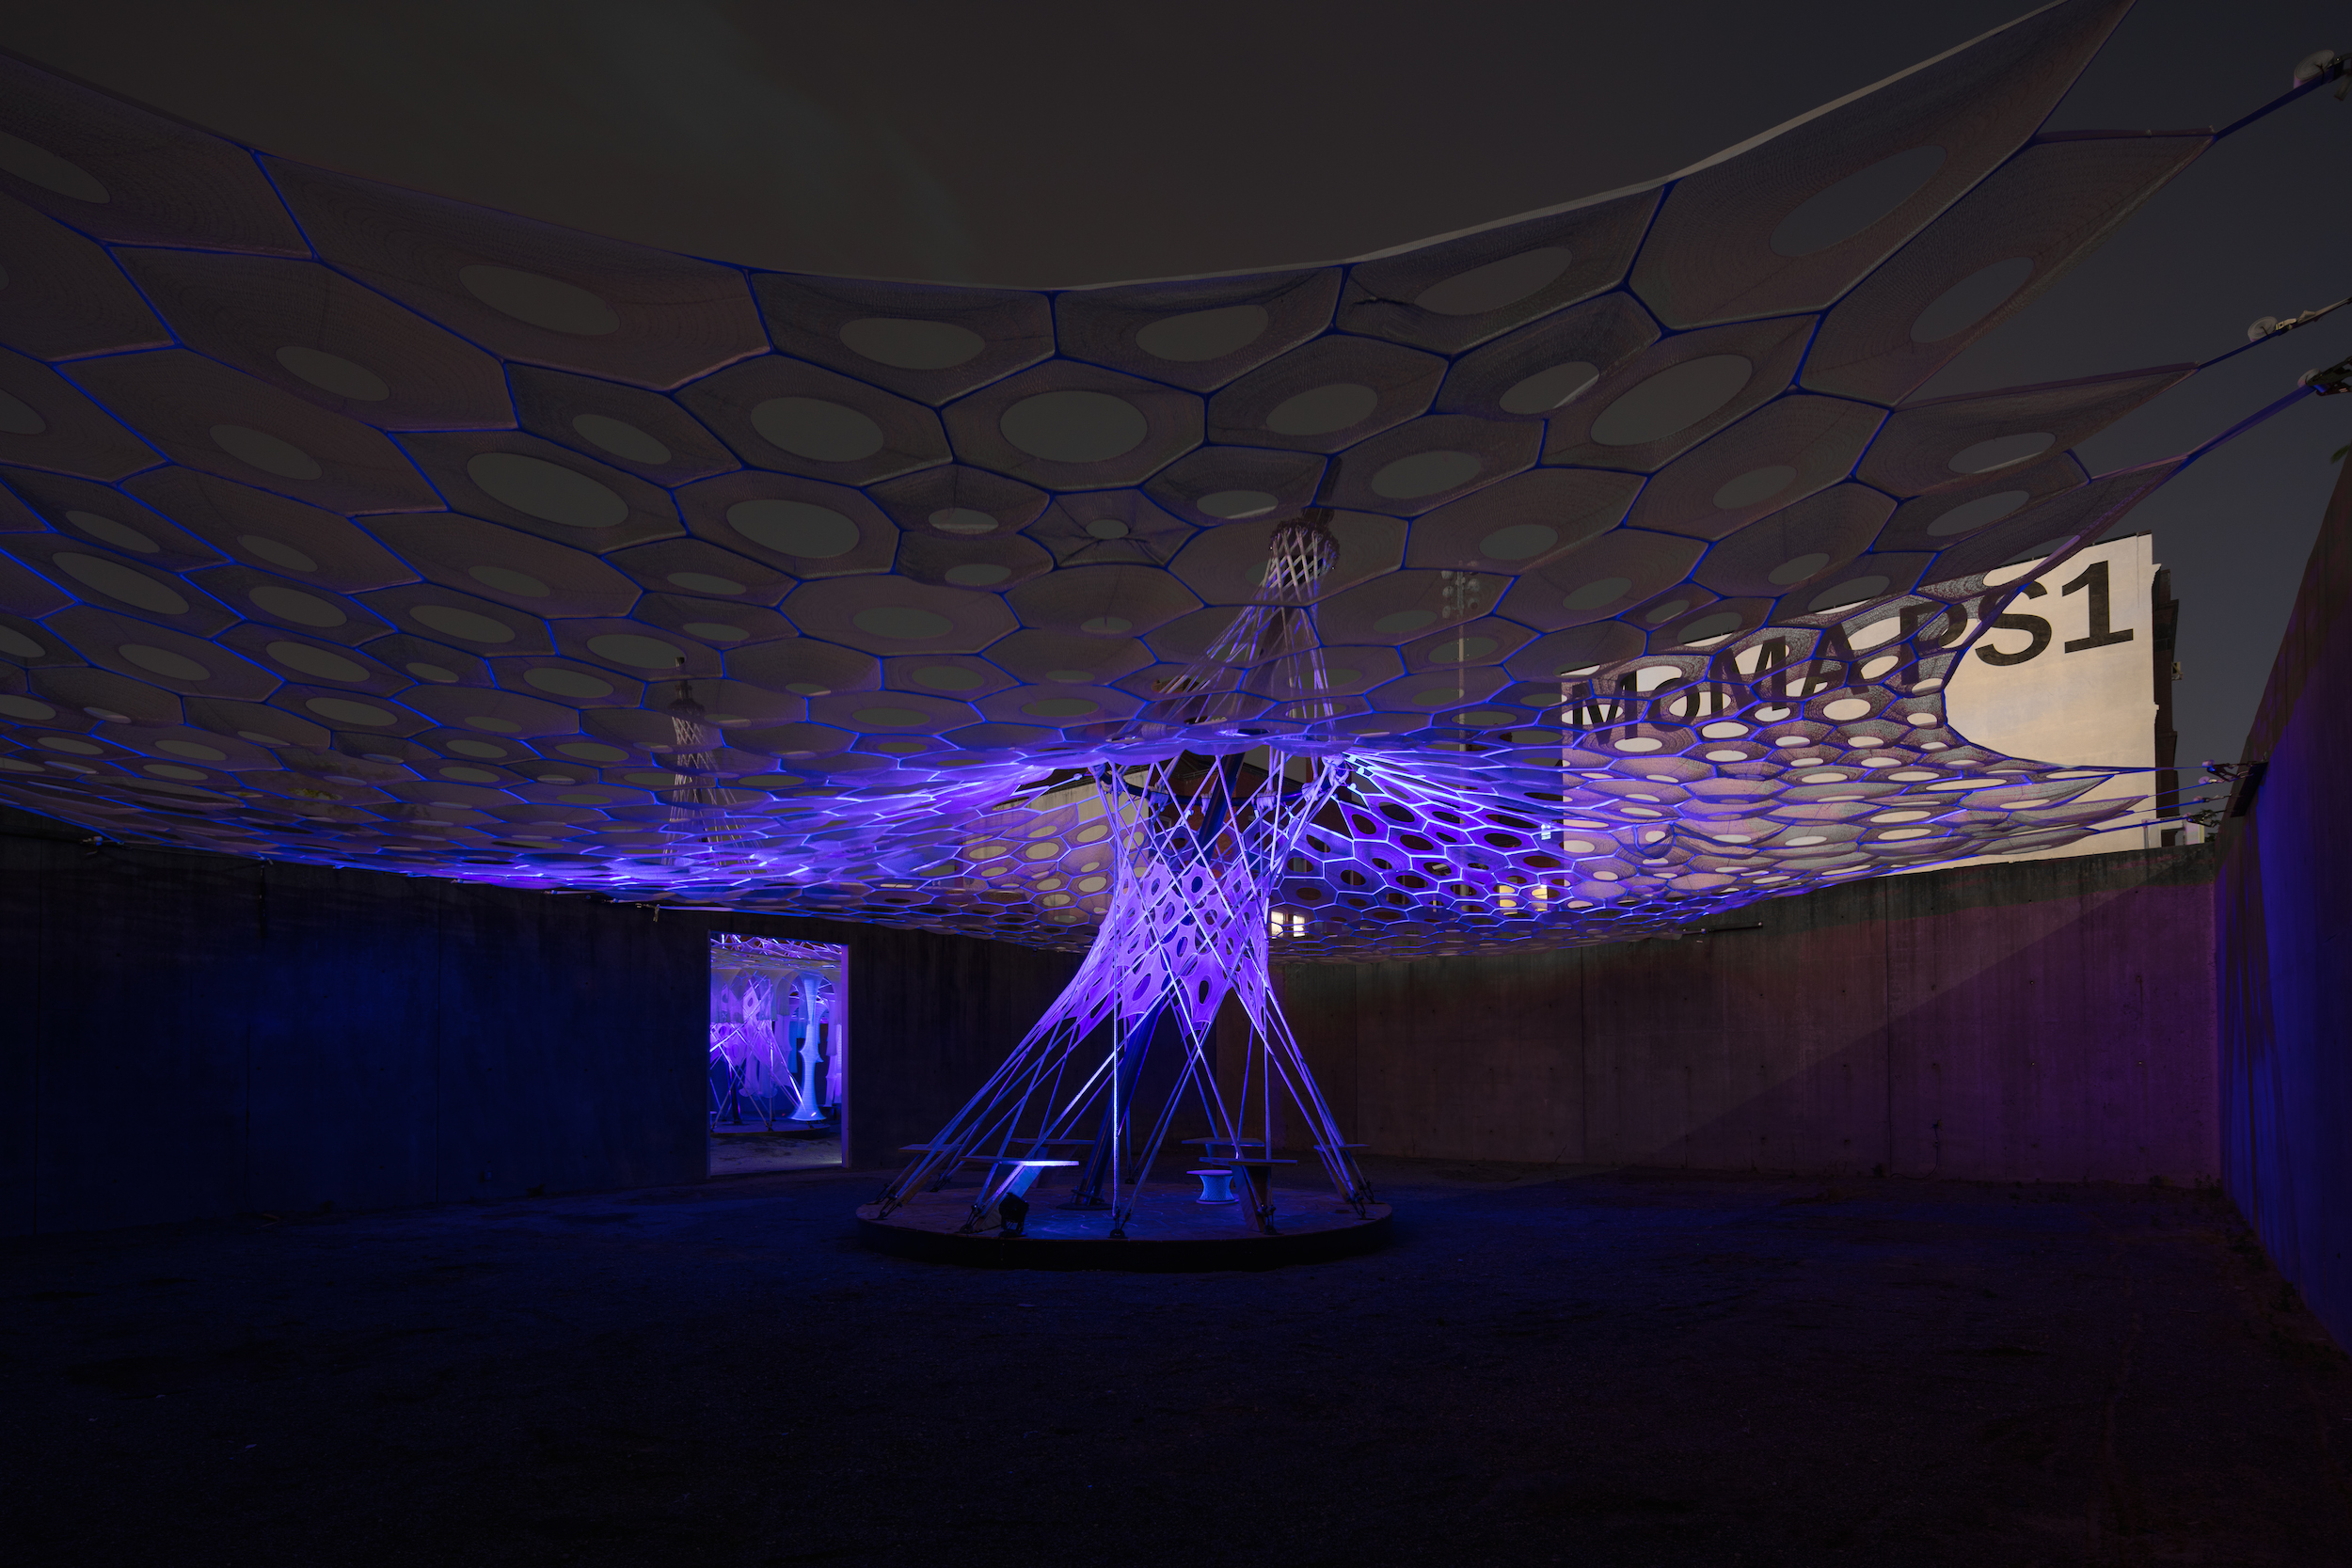 moma ps1 hosts jenny sabin's robot-woven solar canopy - curbed